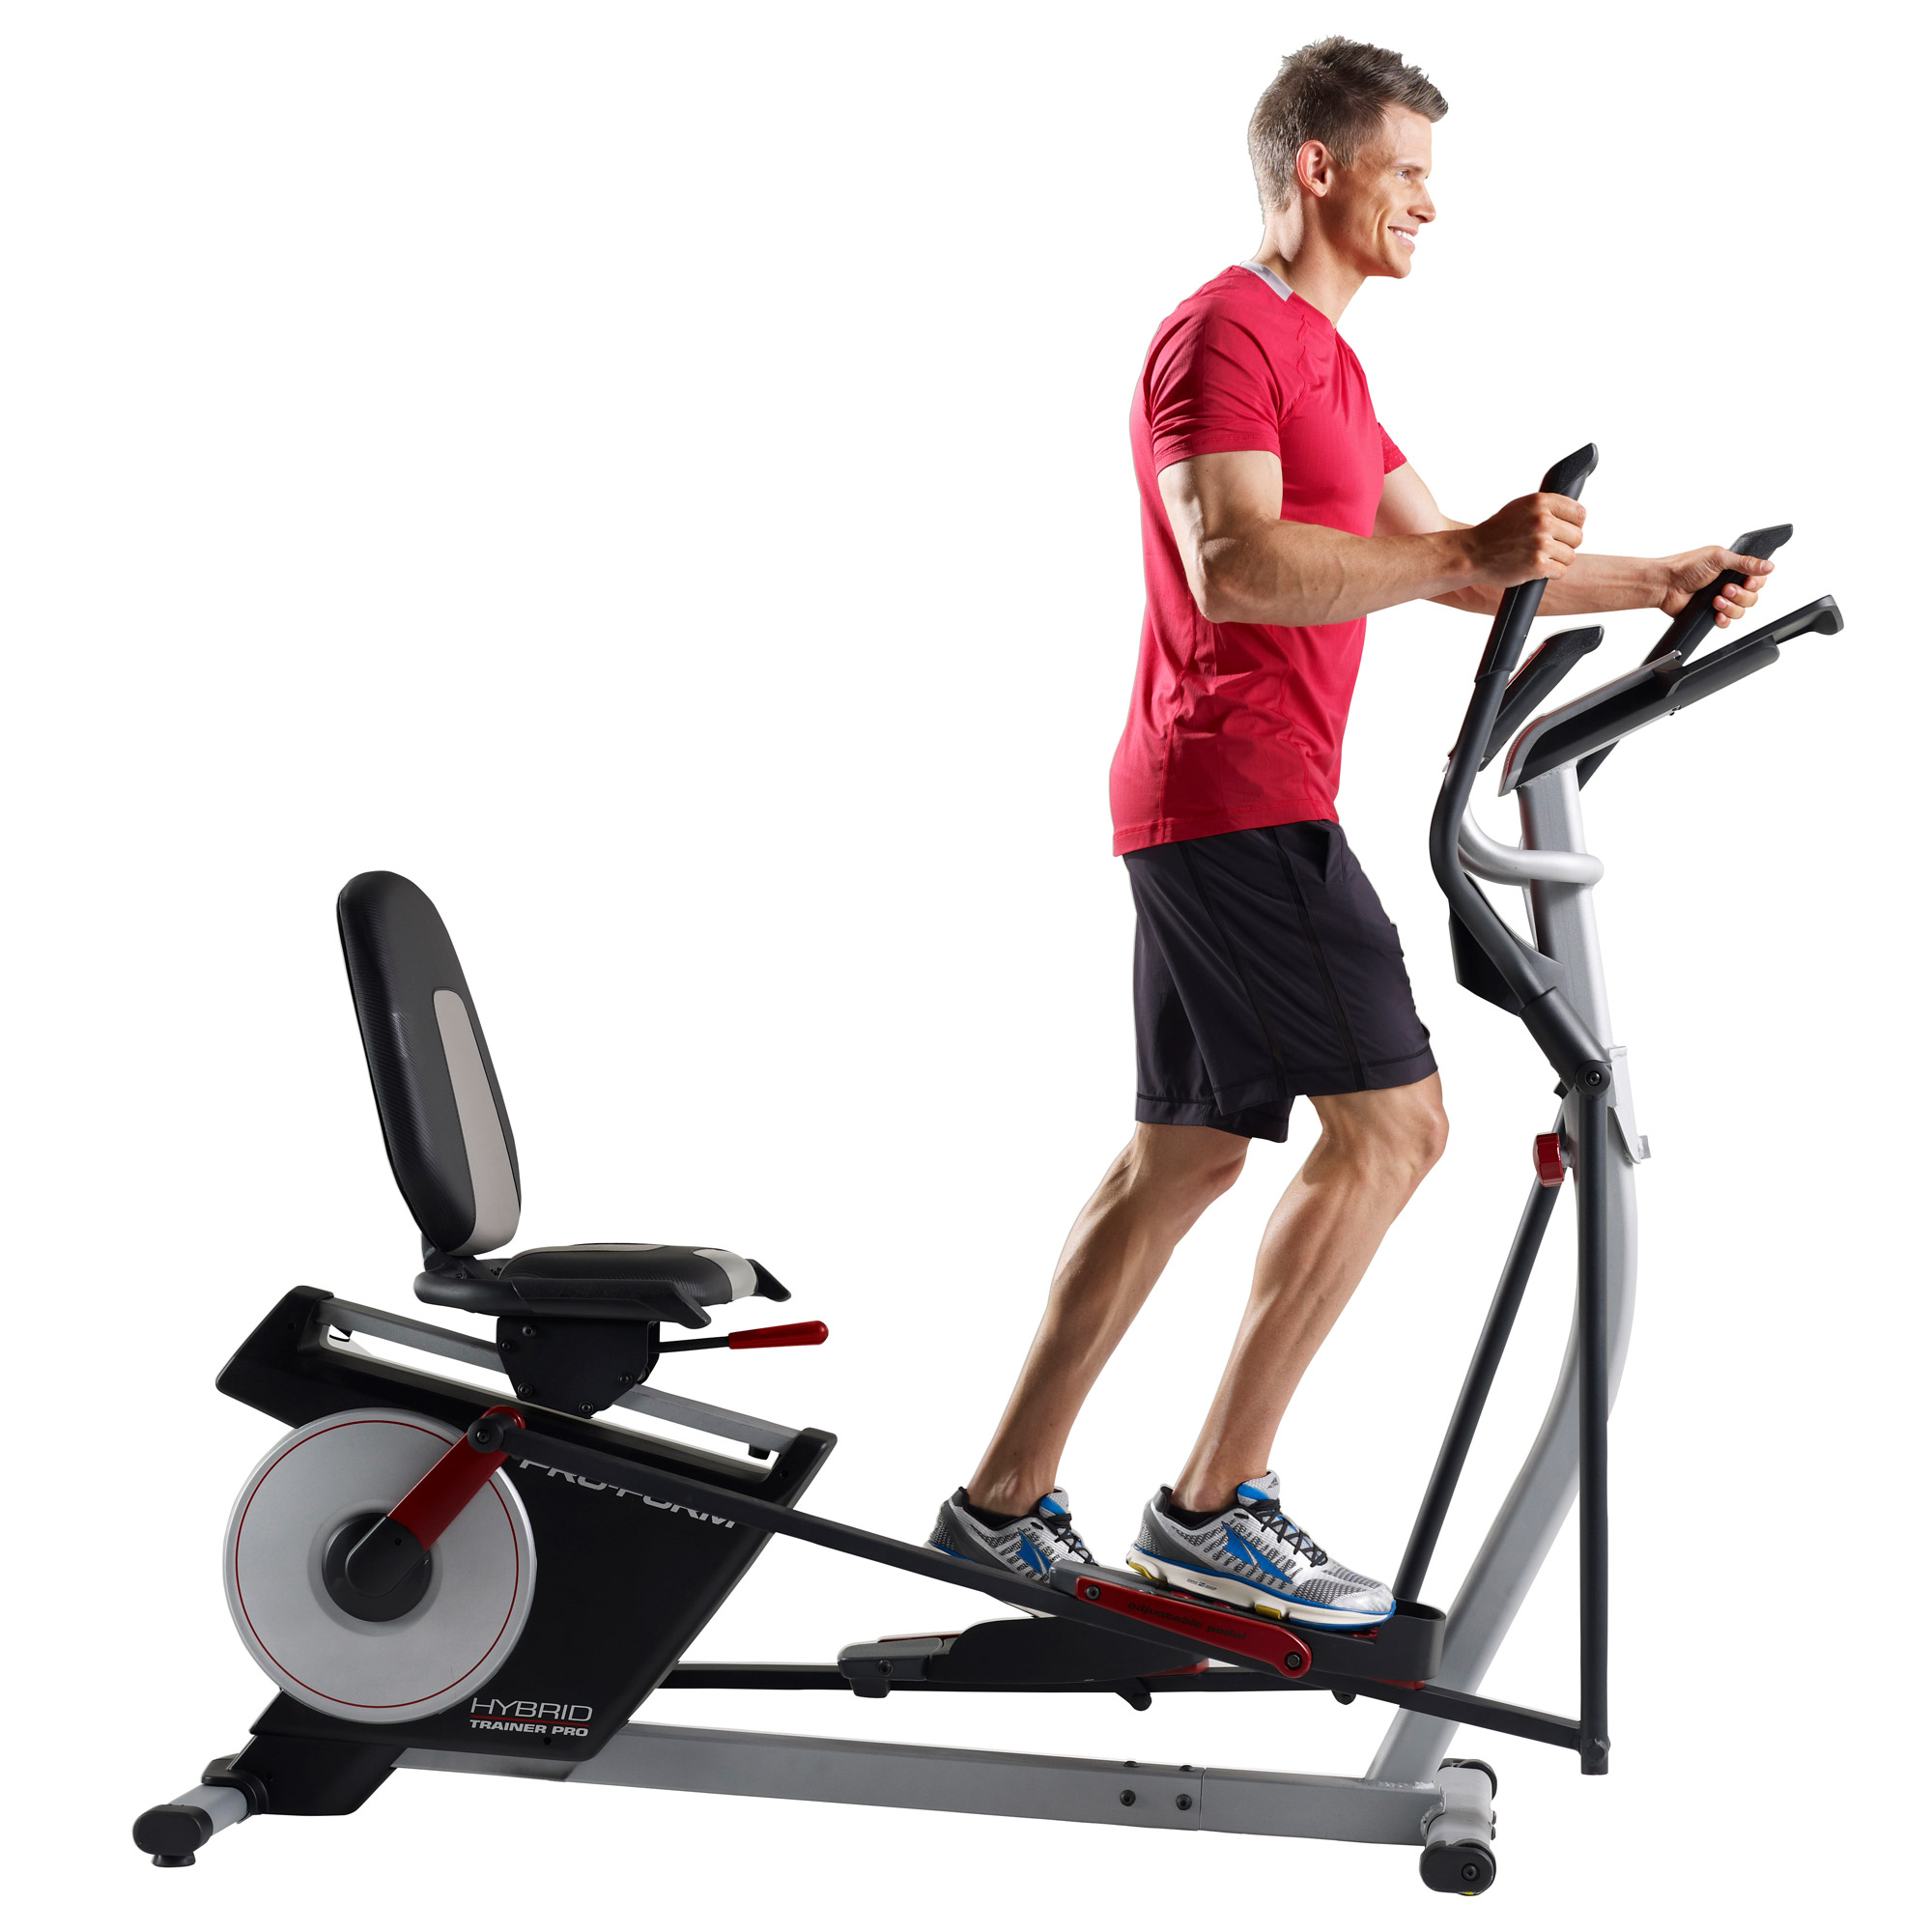 sf mat product free trainer overstock magnetic toys elliptical today shipping mats sunny grey sports